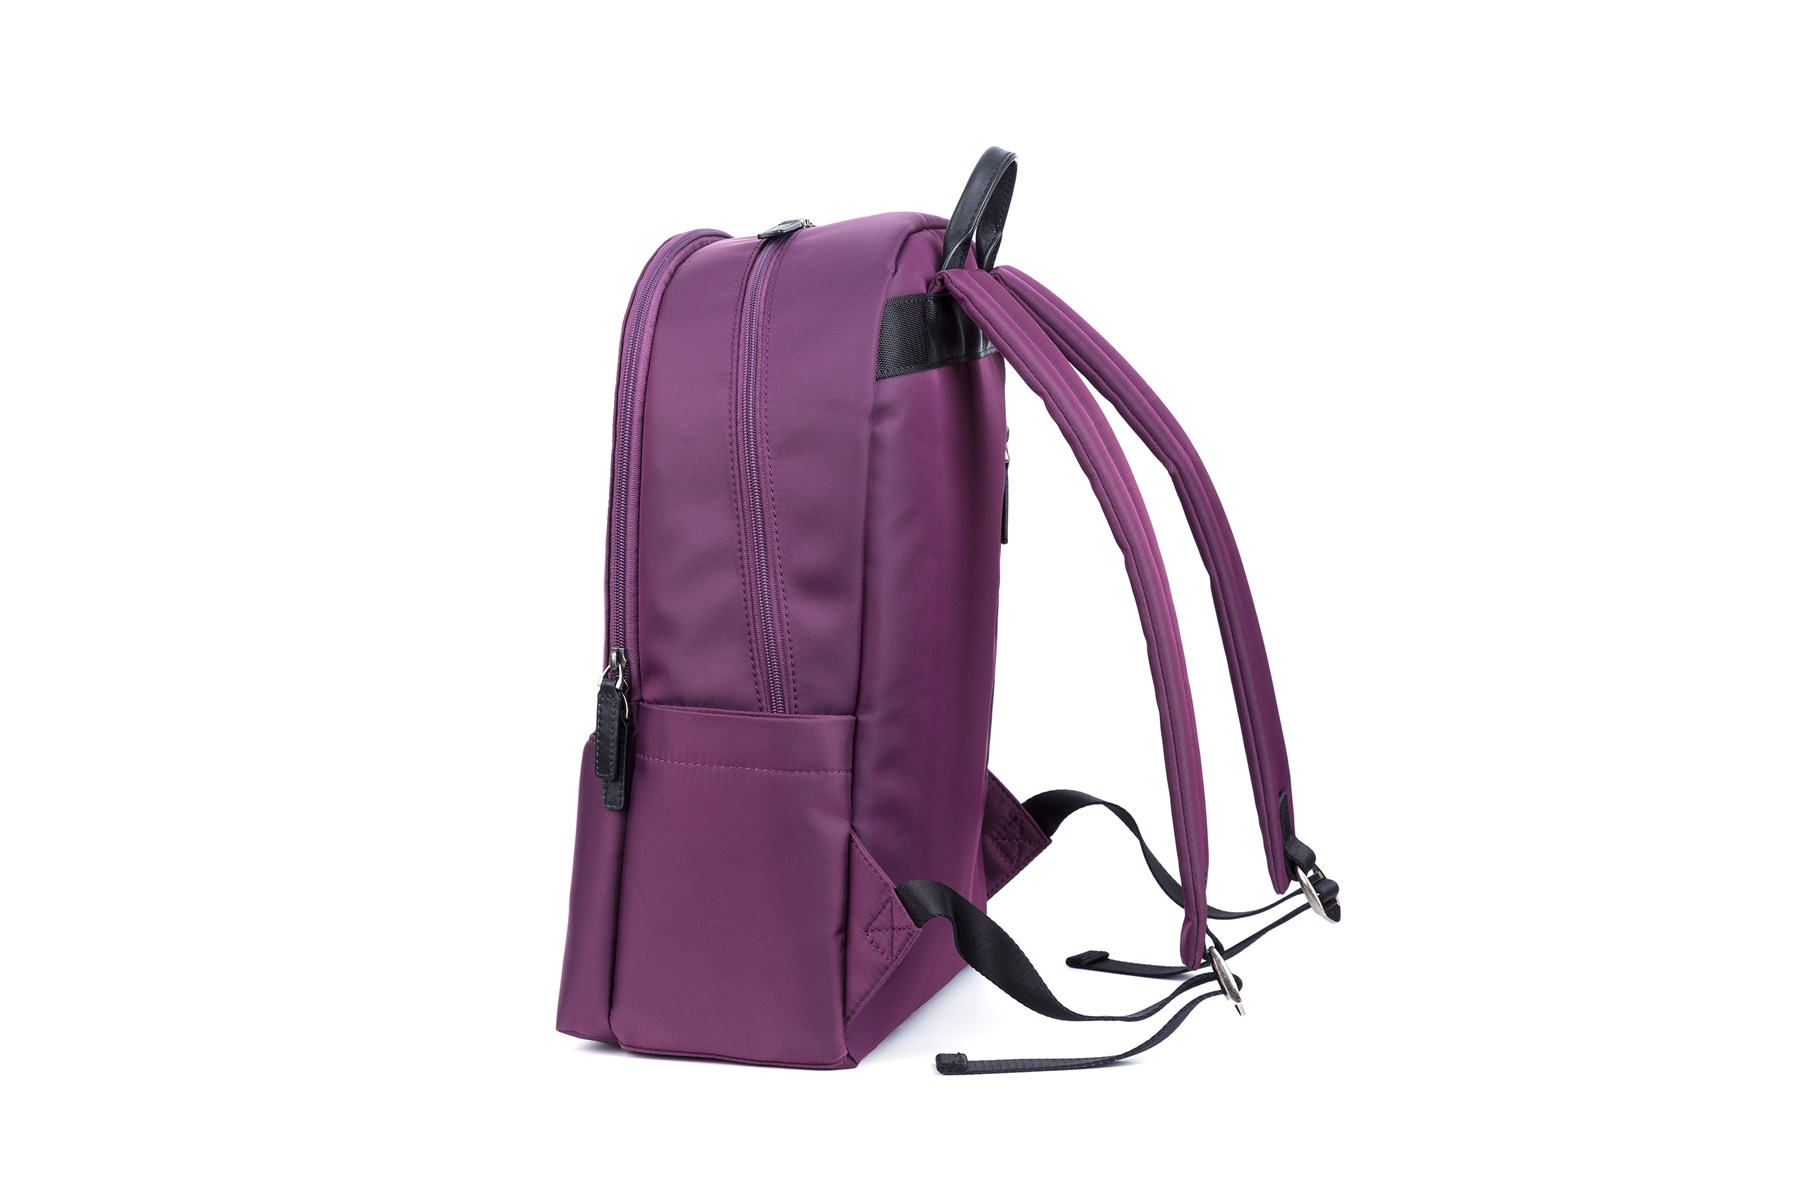 GF bags-Professional Stylish Backpacks Big Backpack Bags Manufacture-6